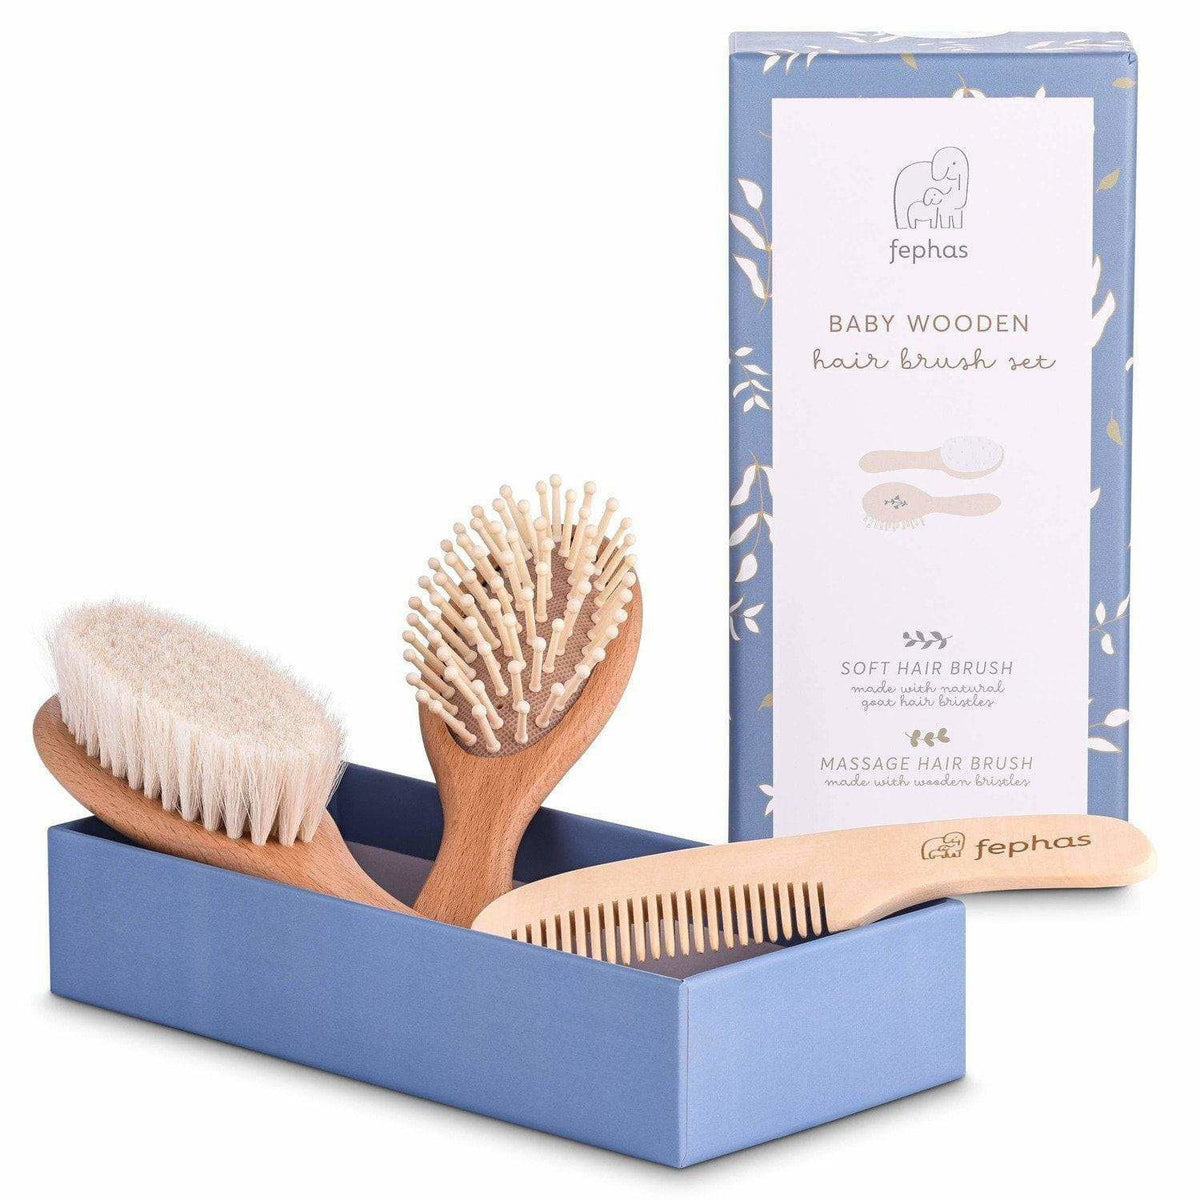 Fephas Baby Wooden Hairbrush Set